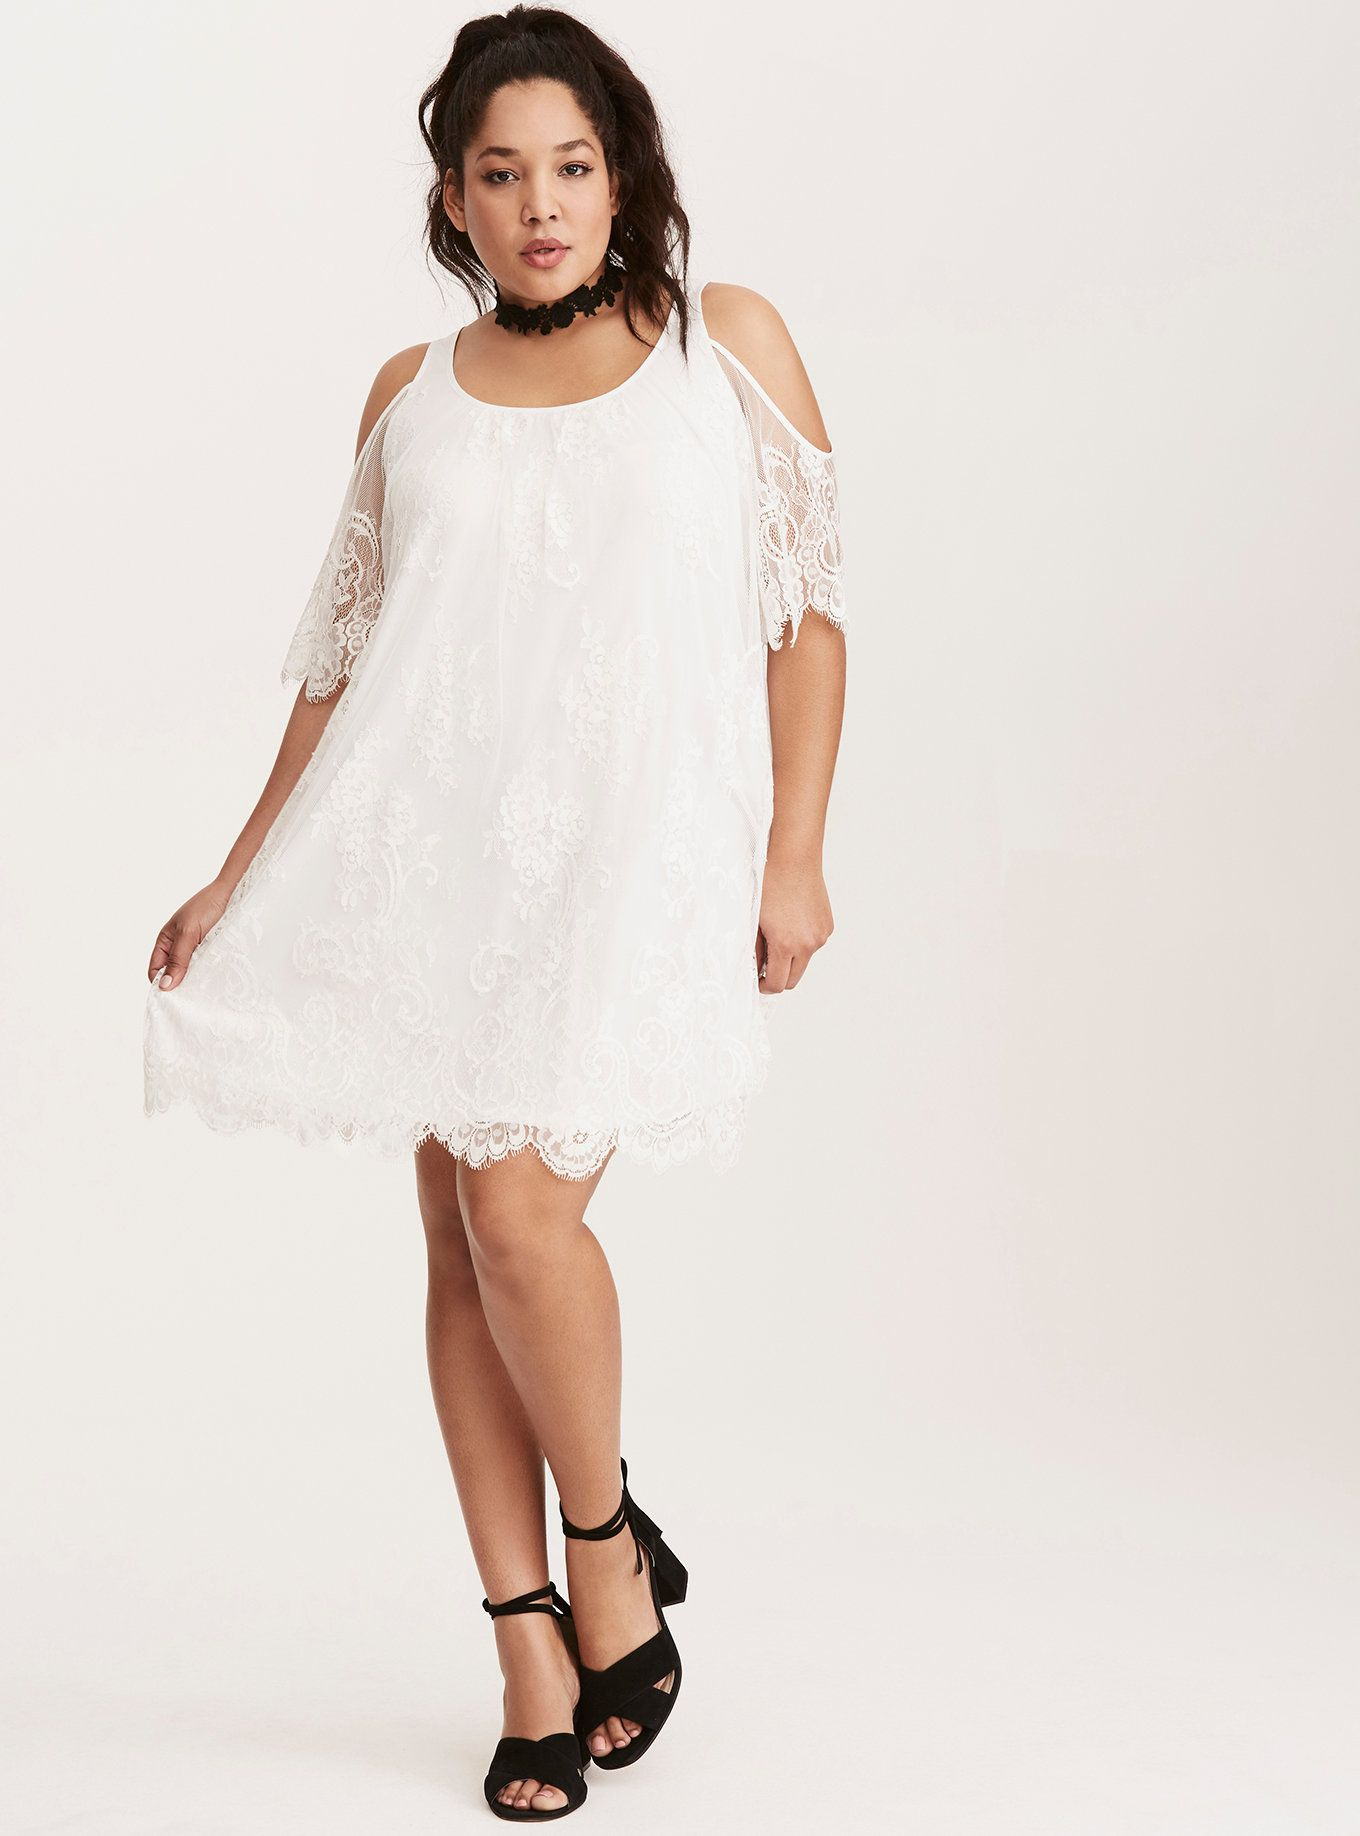 Lace dress torrid  Lace Cold Shoulder Trapeze Dress  Cold shoulder Torrid and Flutter